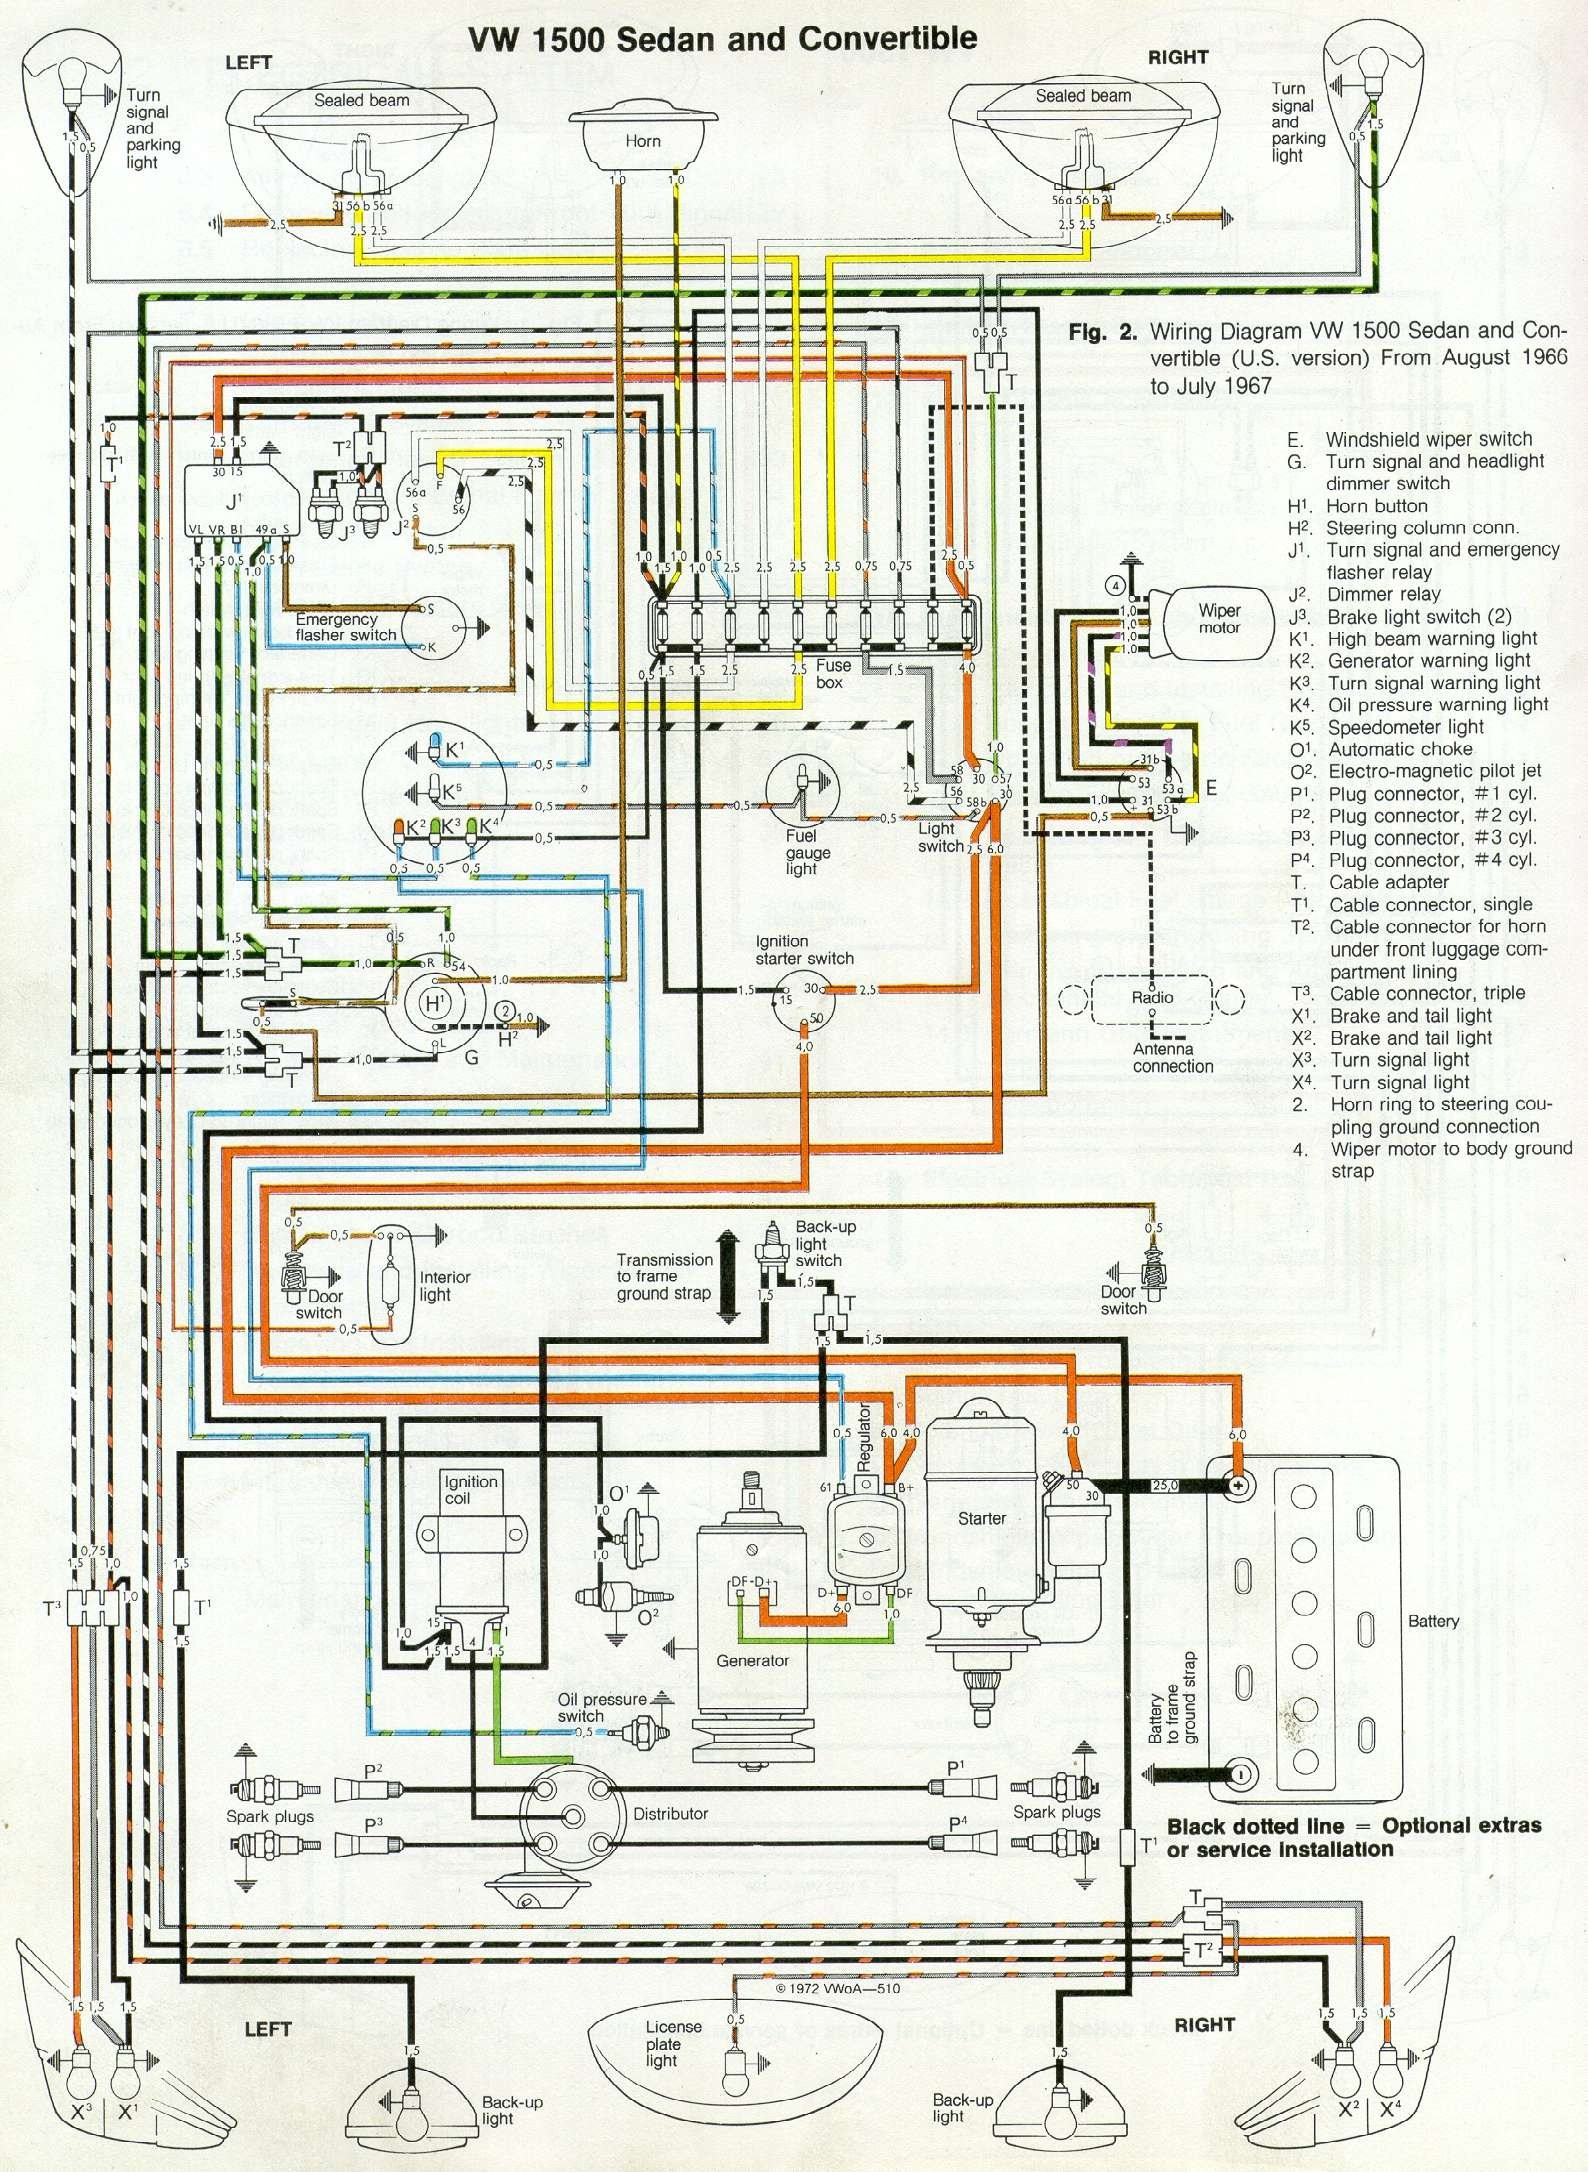 VW Beetle Wiring Digram 67 beetle wiring diagram u s version 1967 vw beetle vw beetle wiring diagram at bakdesigns.co